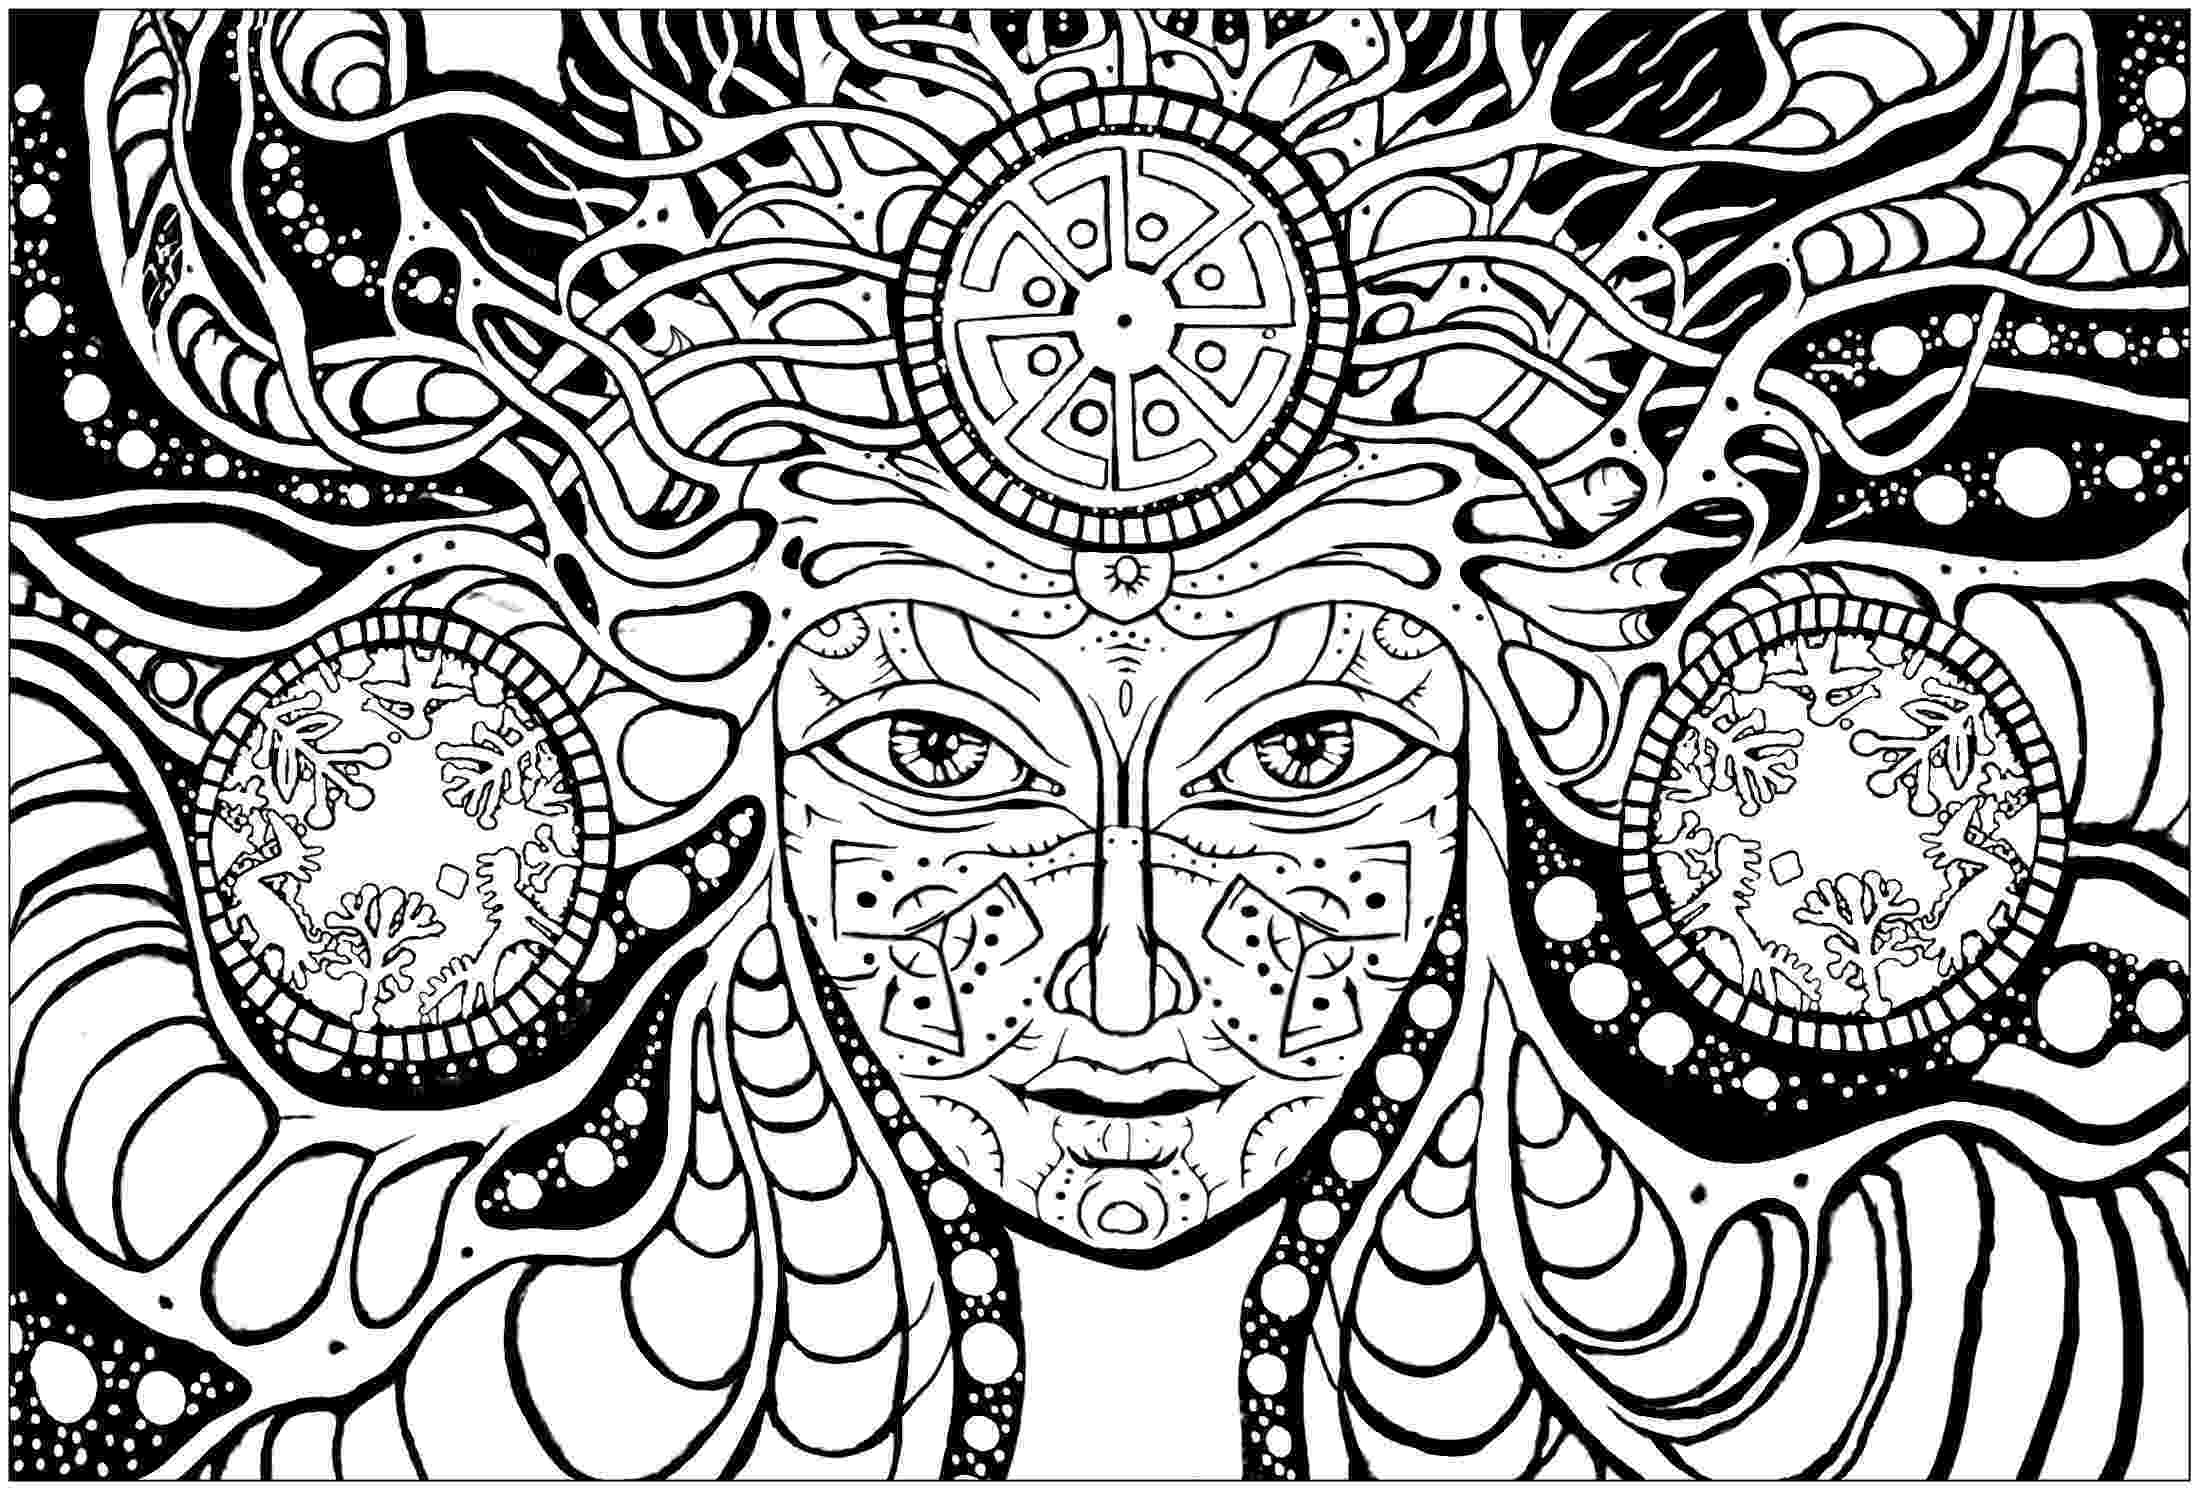 psychedelic colouring pages psychedelic coloring pages to download and print for free colouring psychedelic pages 1 1